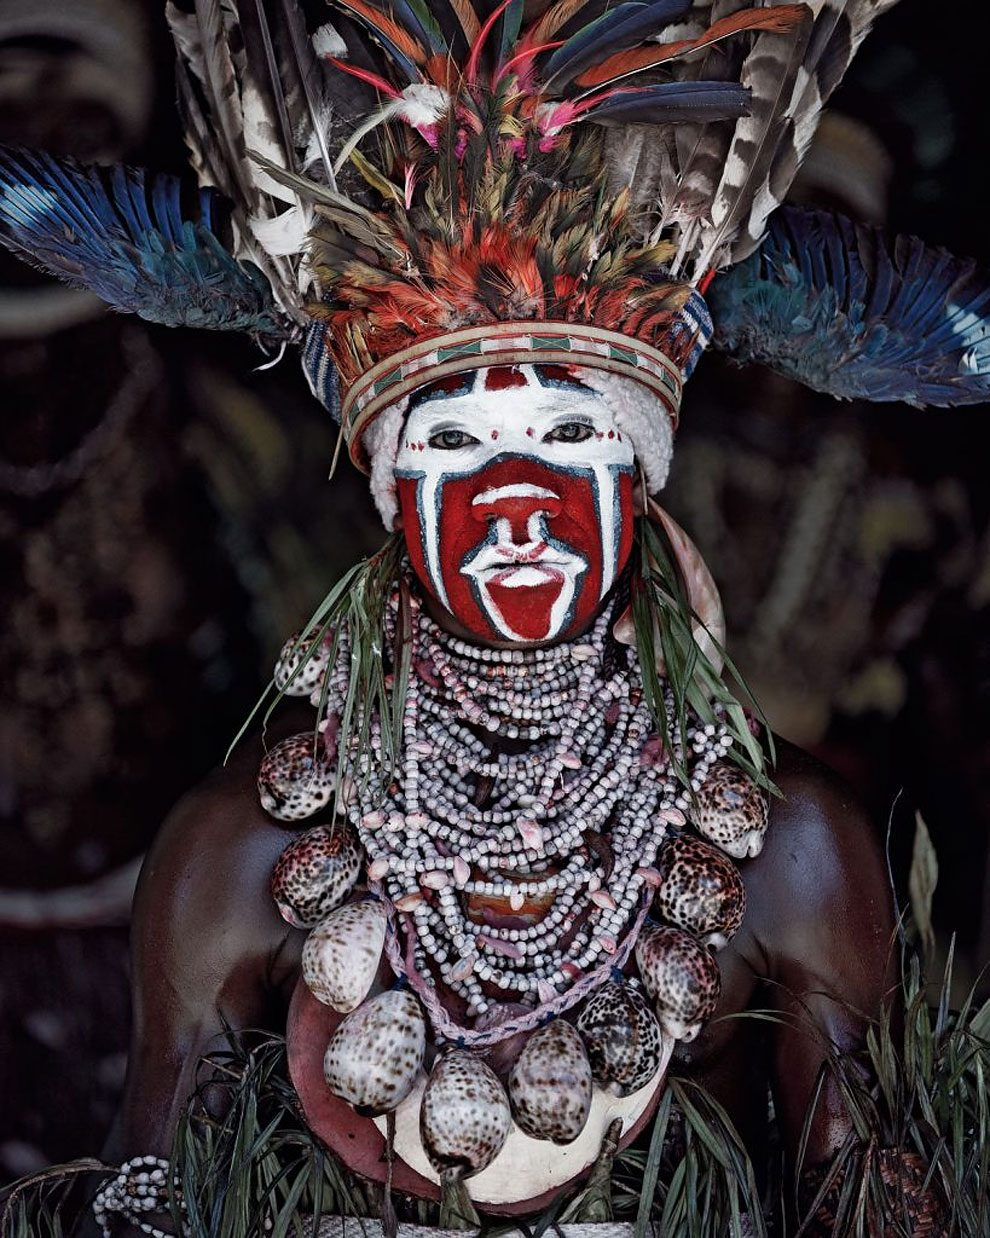 tribu-indigeni-mondo-fotografia-before-they-pass-away-jimmy-nelson-33